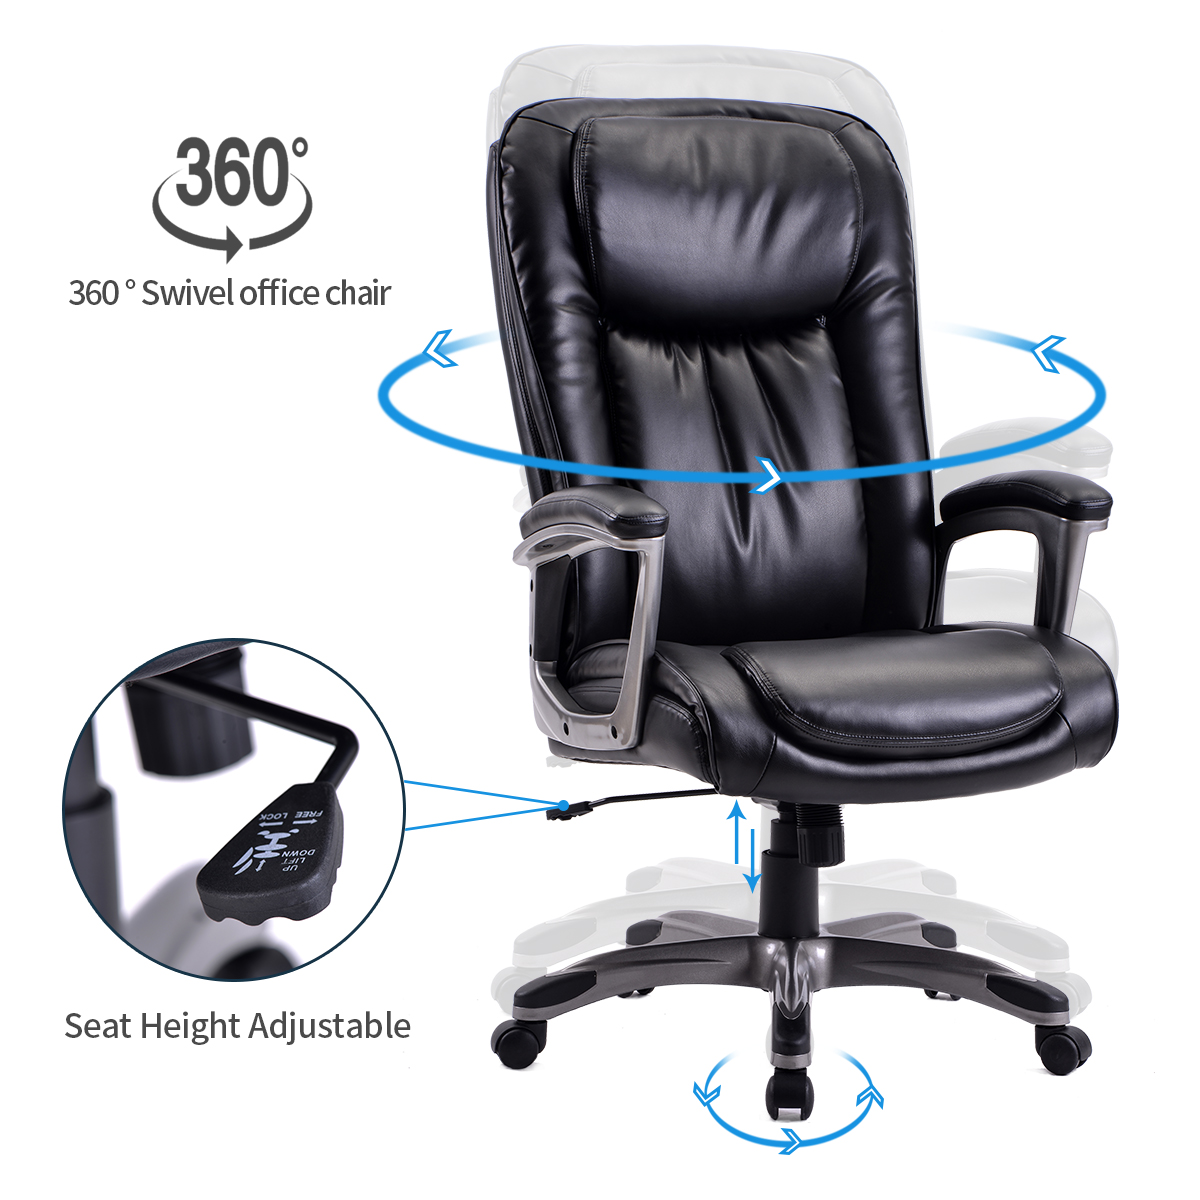 Computer Chair With Arms Urhomepro Pu Leather Executive Office Chair High Back Ergonomic Adjustable Office Chair Swivel Task Office Desk Chair W Casters Gaming Chair For Home Office Black W12876 Walmart Com